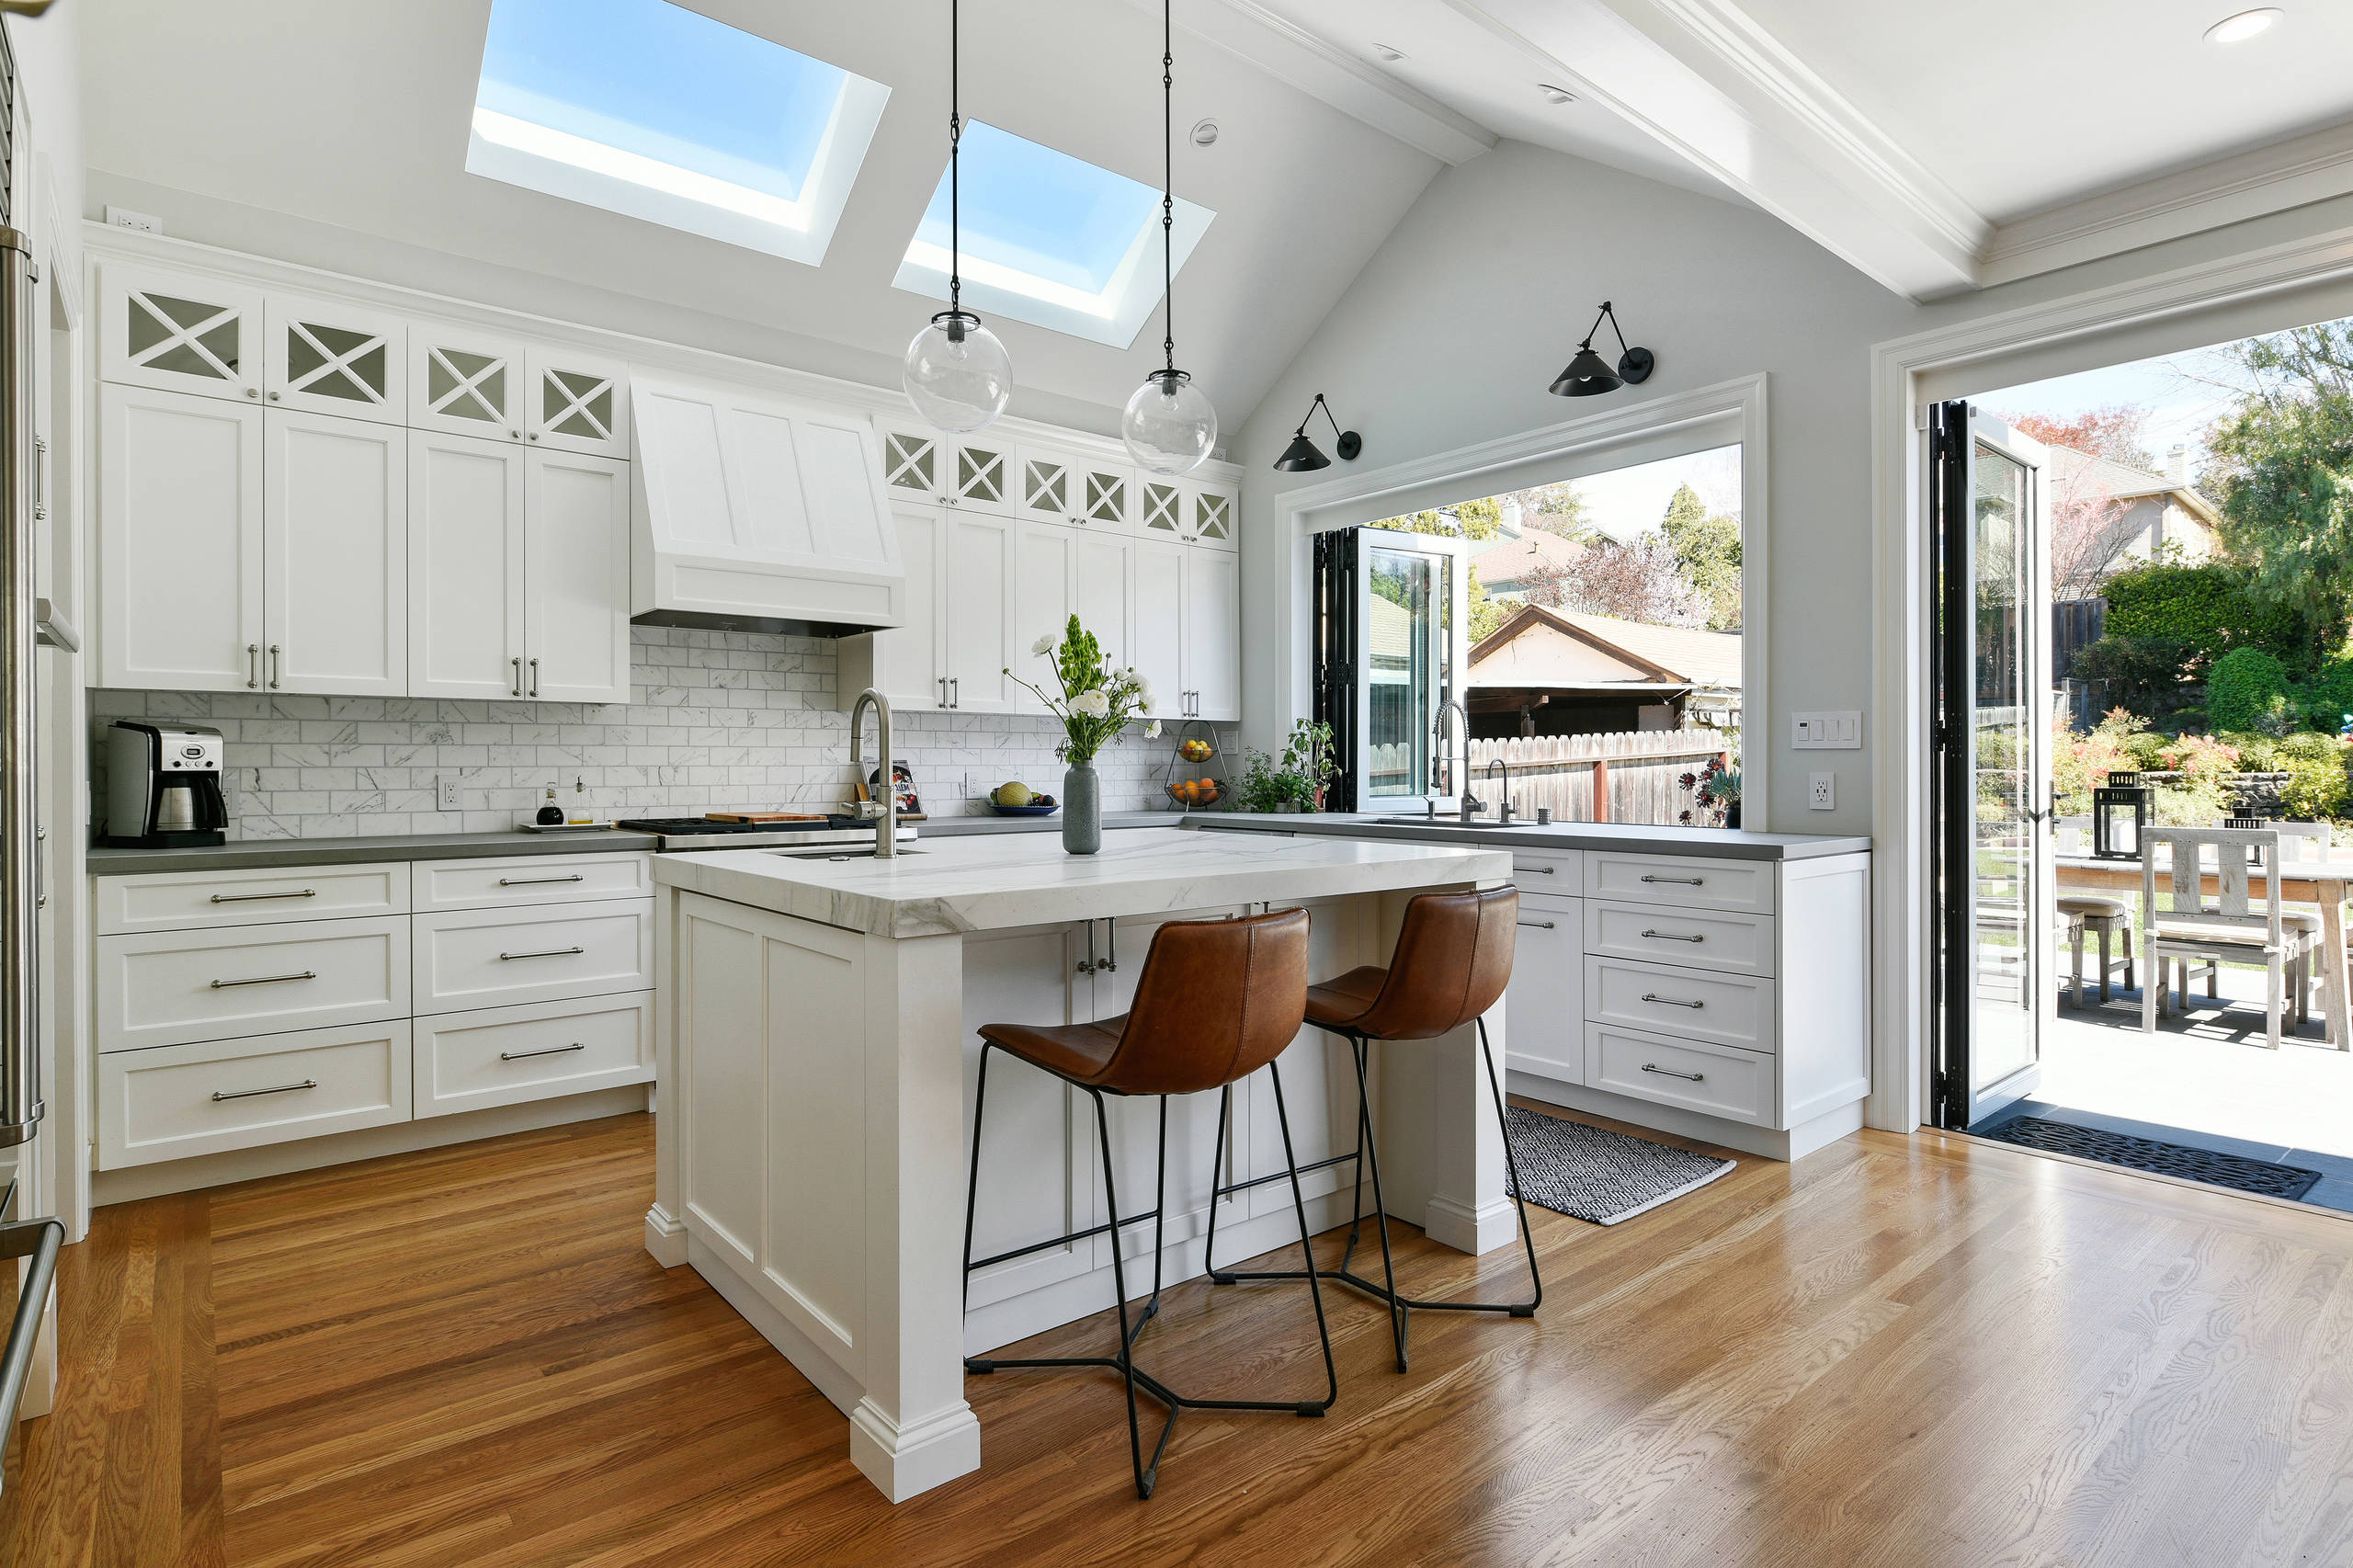 75 Beautiful Kitchen With White Cabinets And Concrete Countertops Pictures Ideas December 2020 Houzz